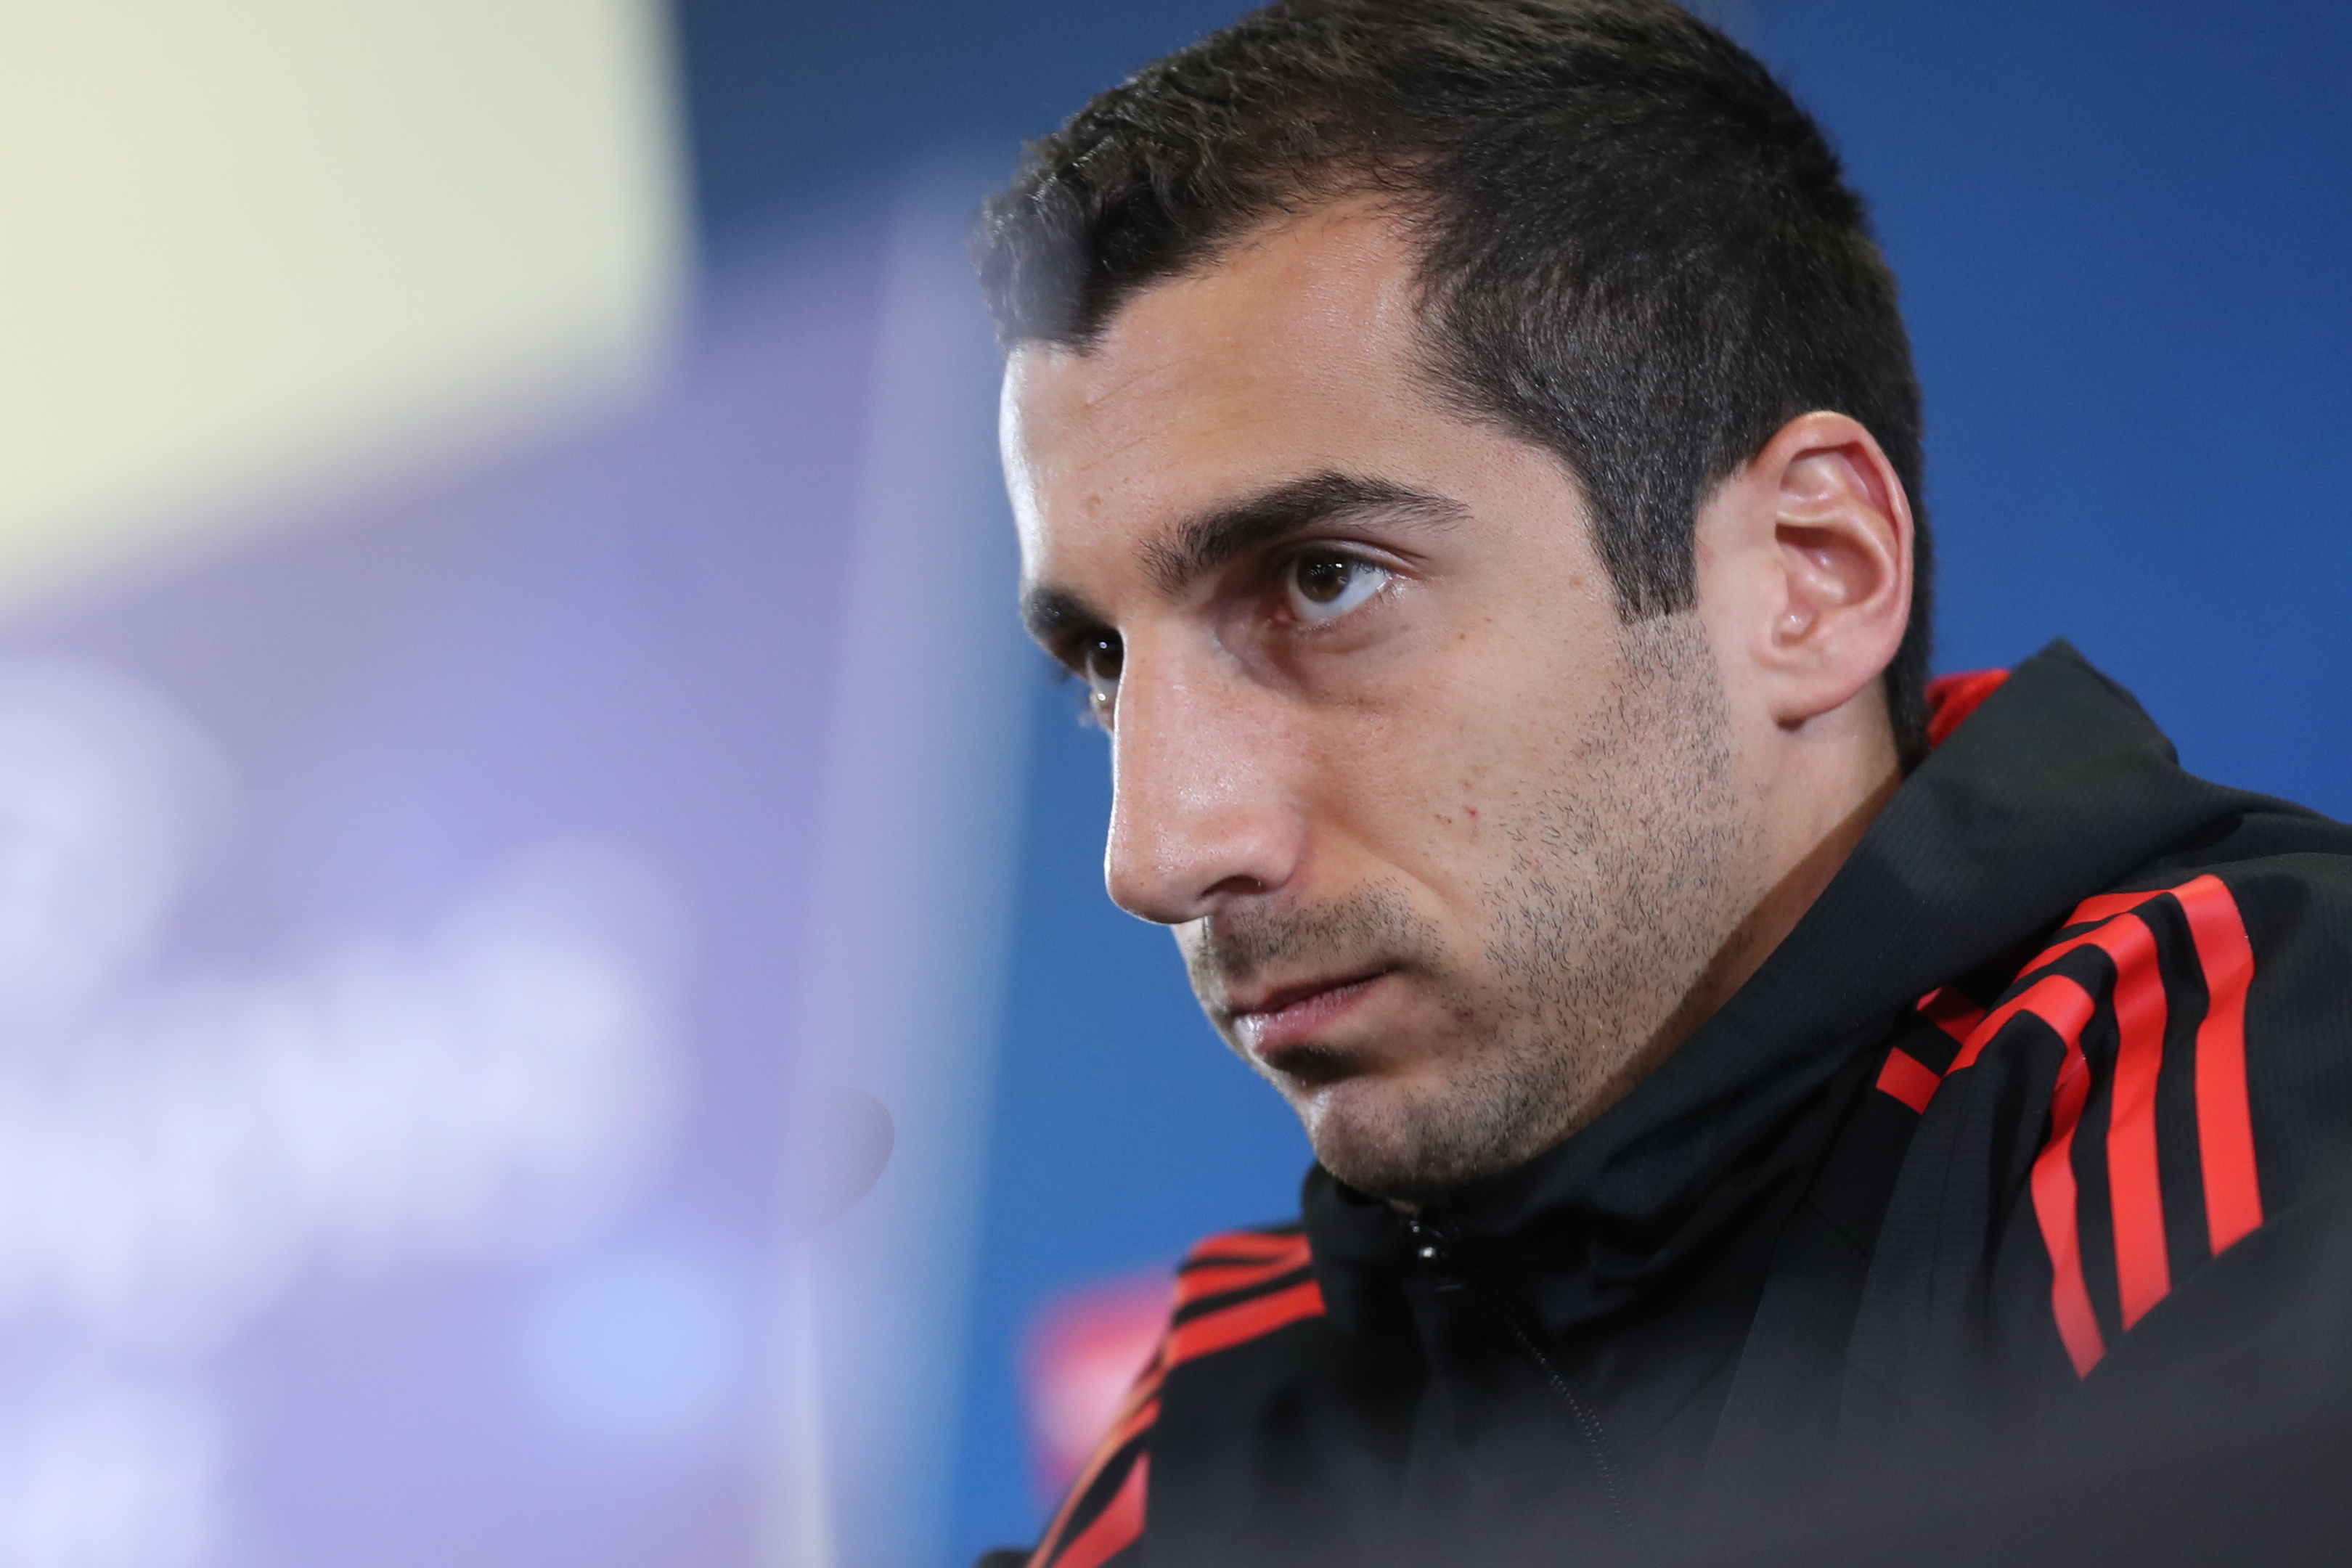 Manchester United's Henrikh Mkhitaryan (Valery SharifulinTASS via Getty Images)